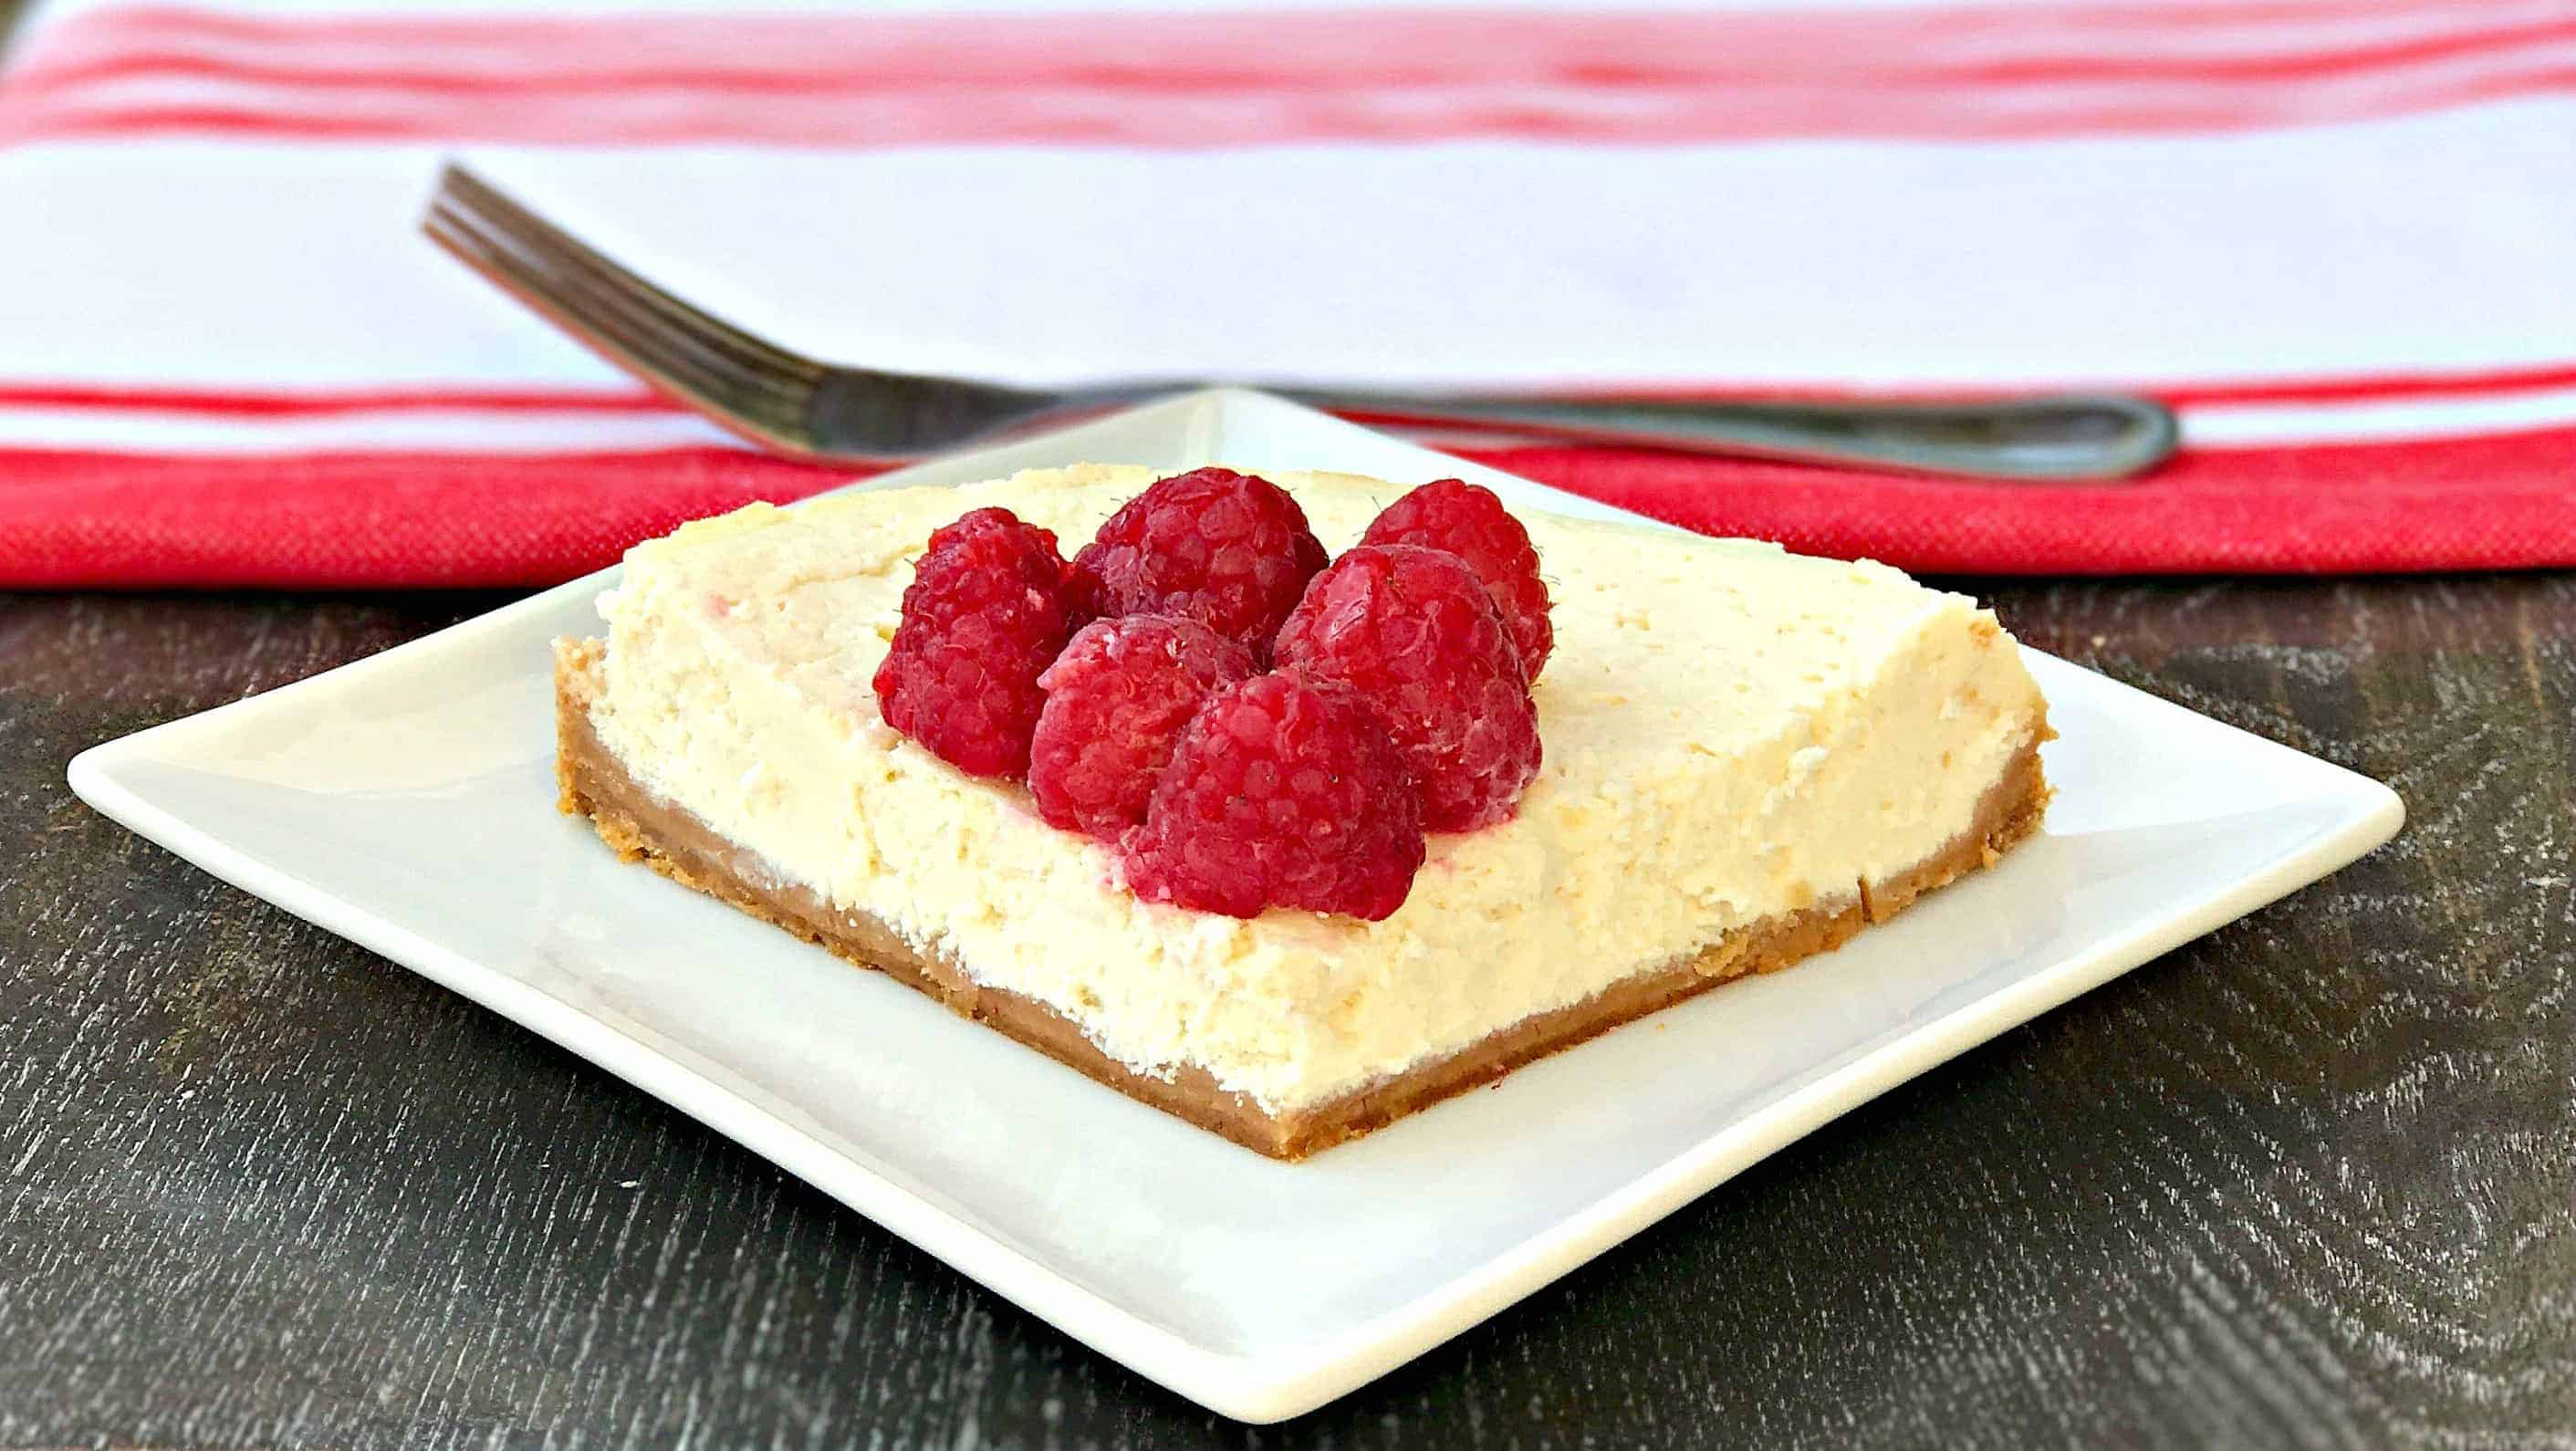 cheesecake topped with raspberries on a white plate